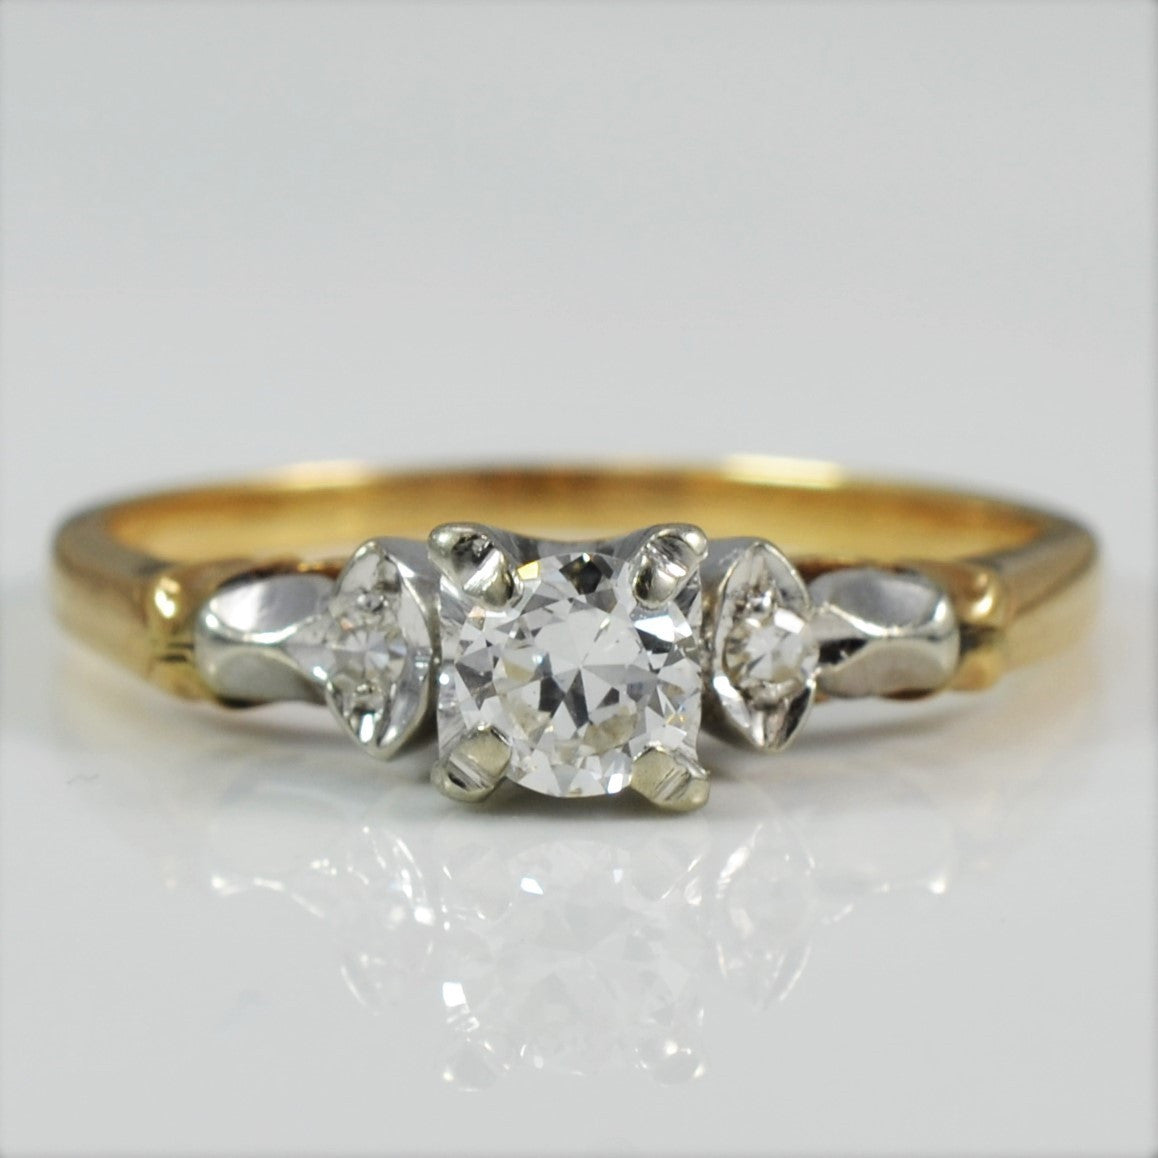 Retro Era Engagement Ring | 0.28 ctw, SZ 7 |